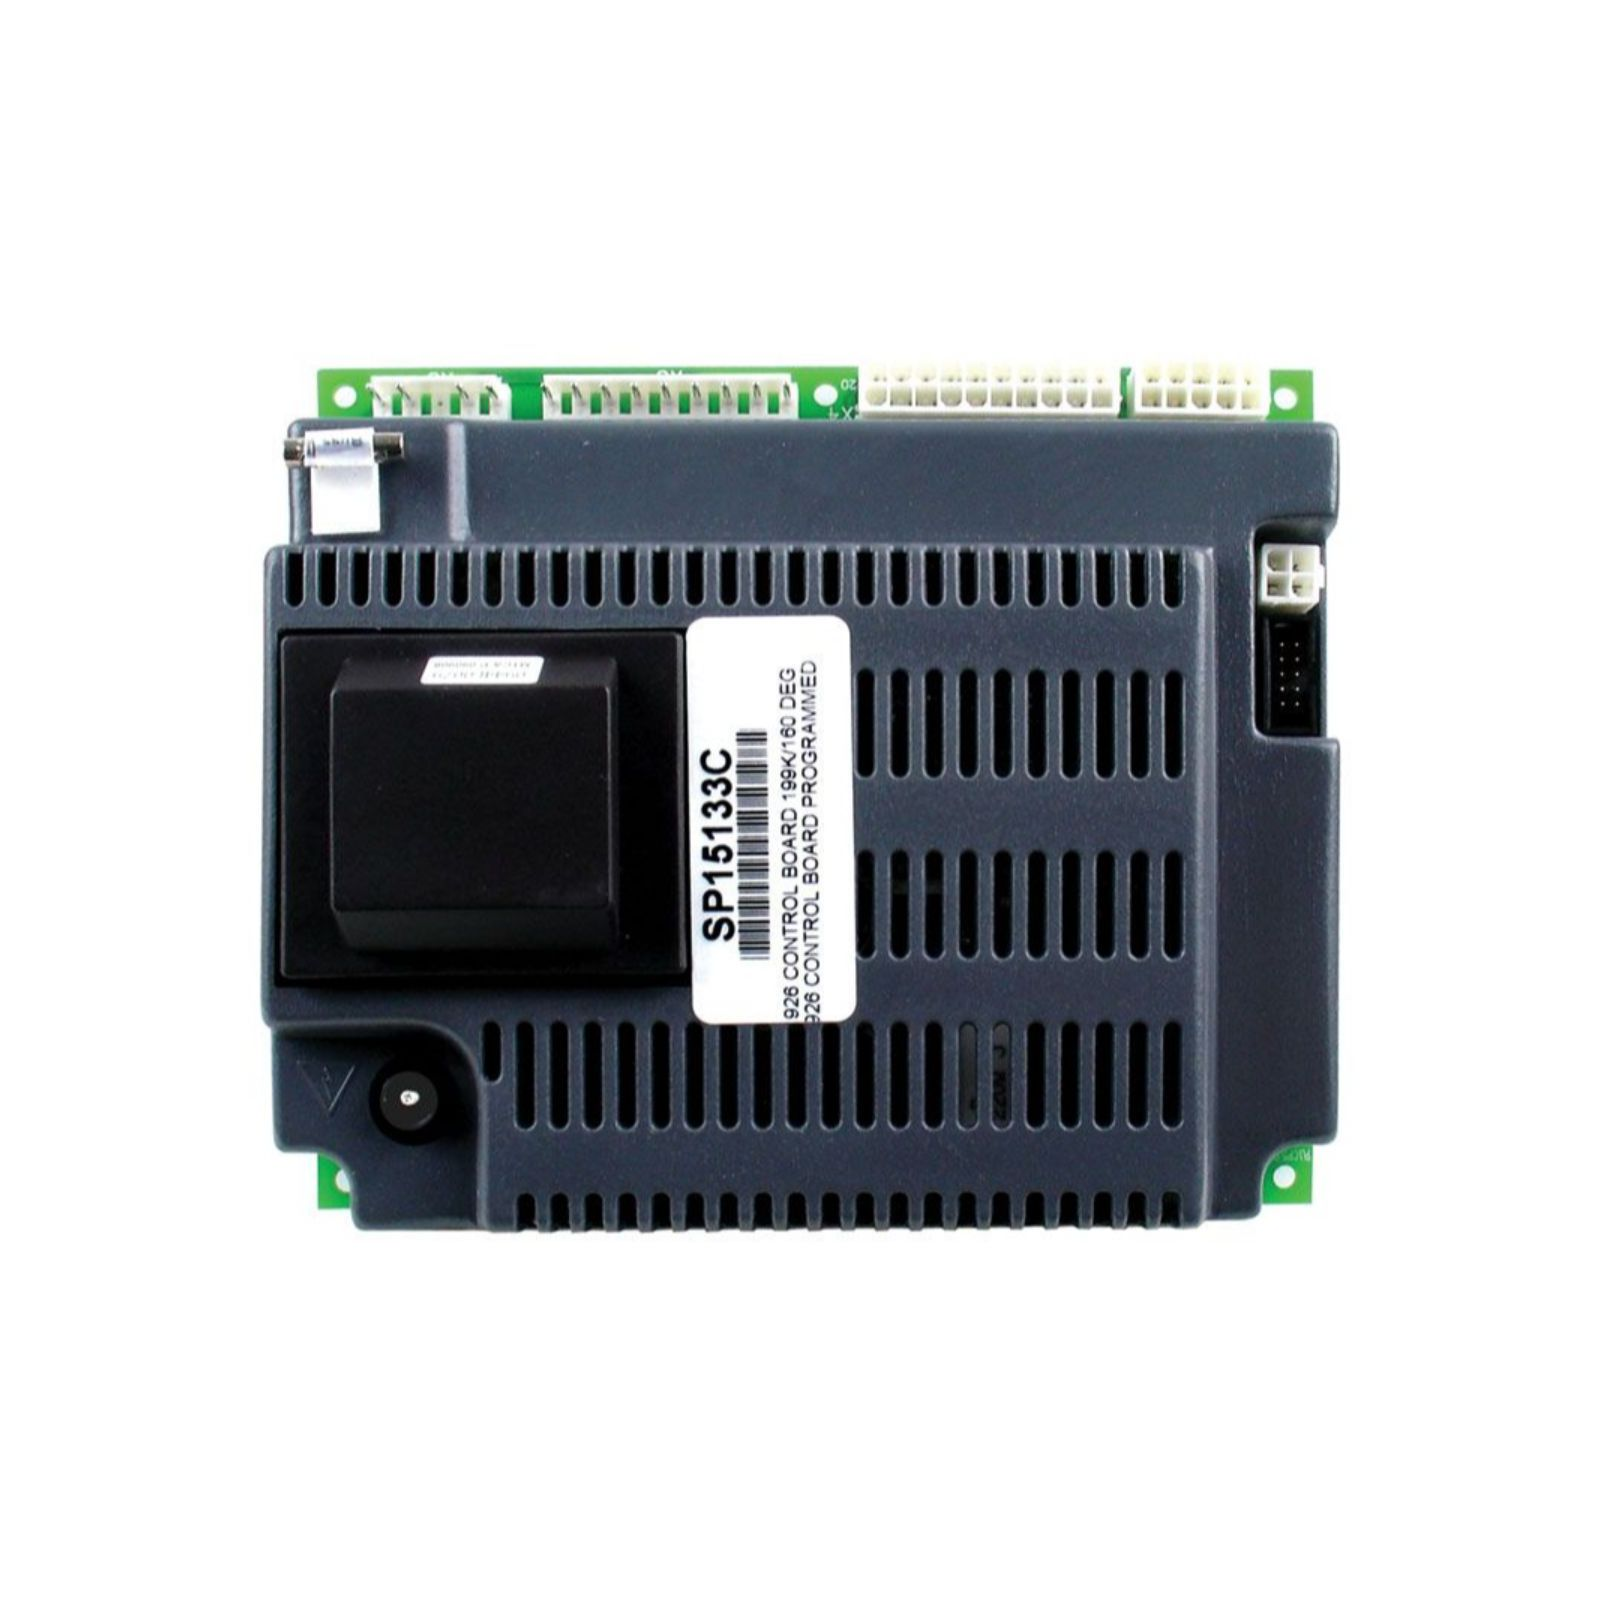 PROTECH SP15133C - 926 Control Board - 160 degrees - 199 000 BTU/HR